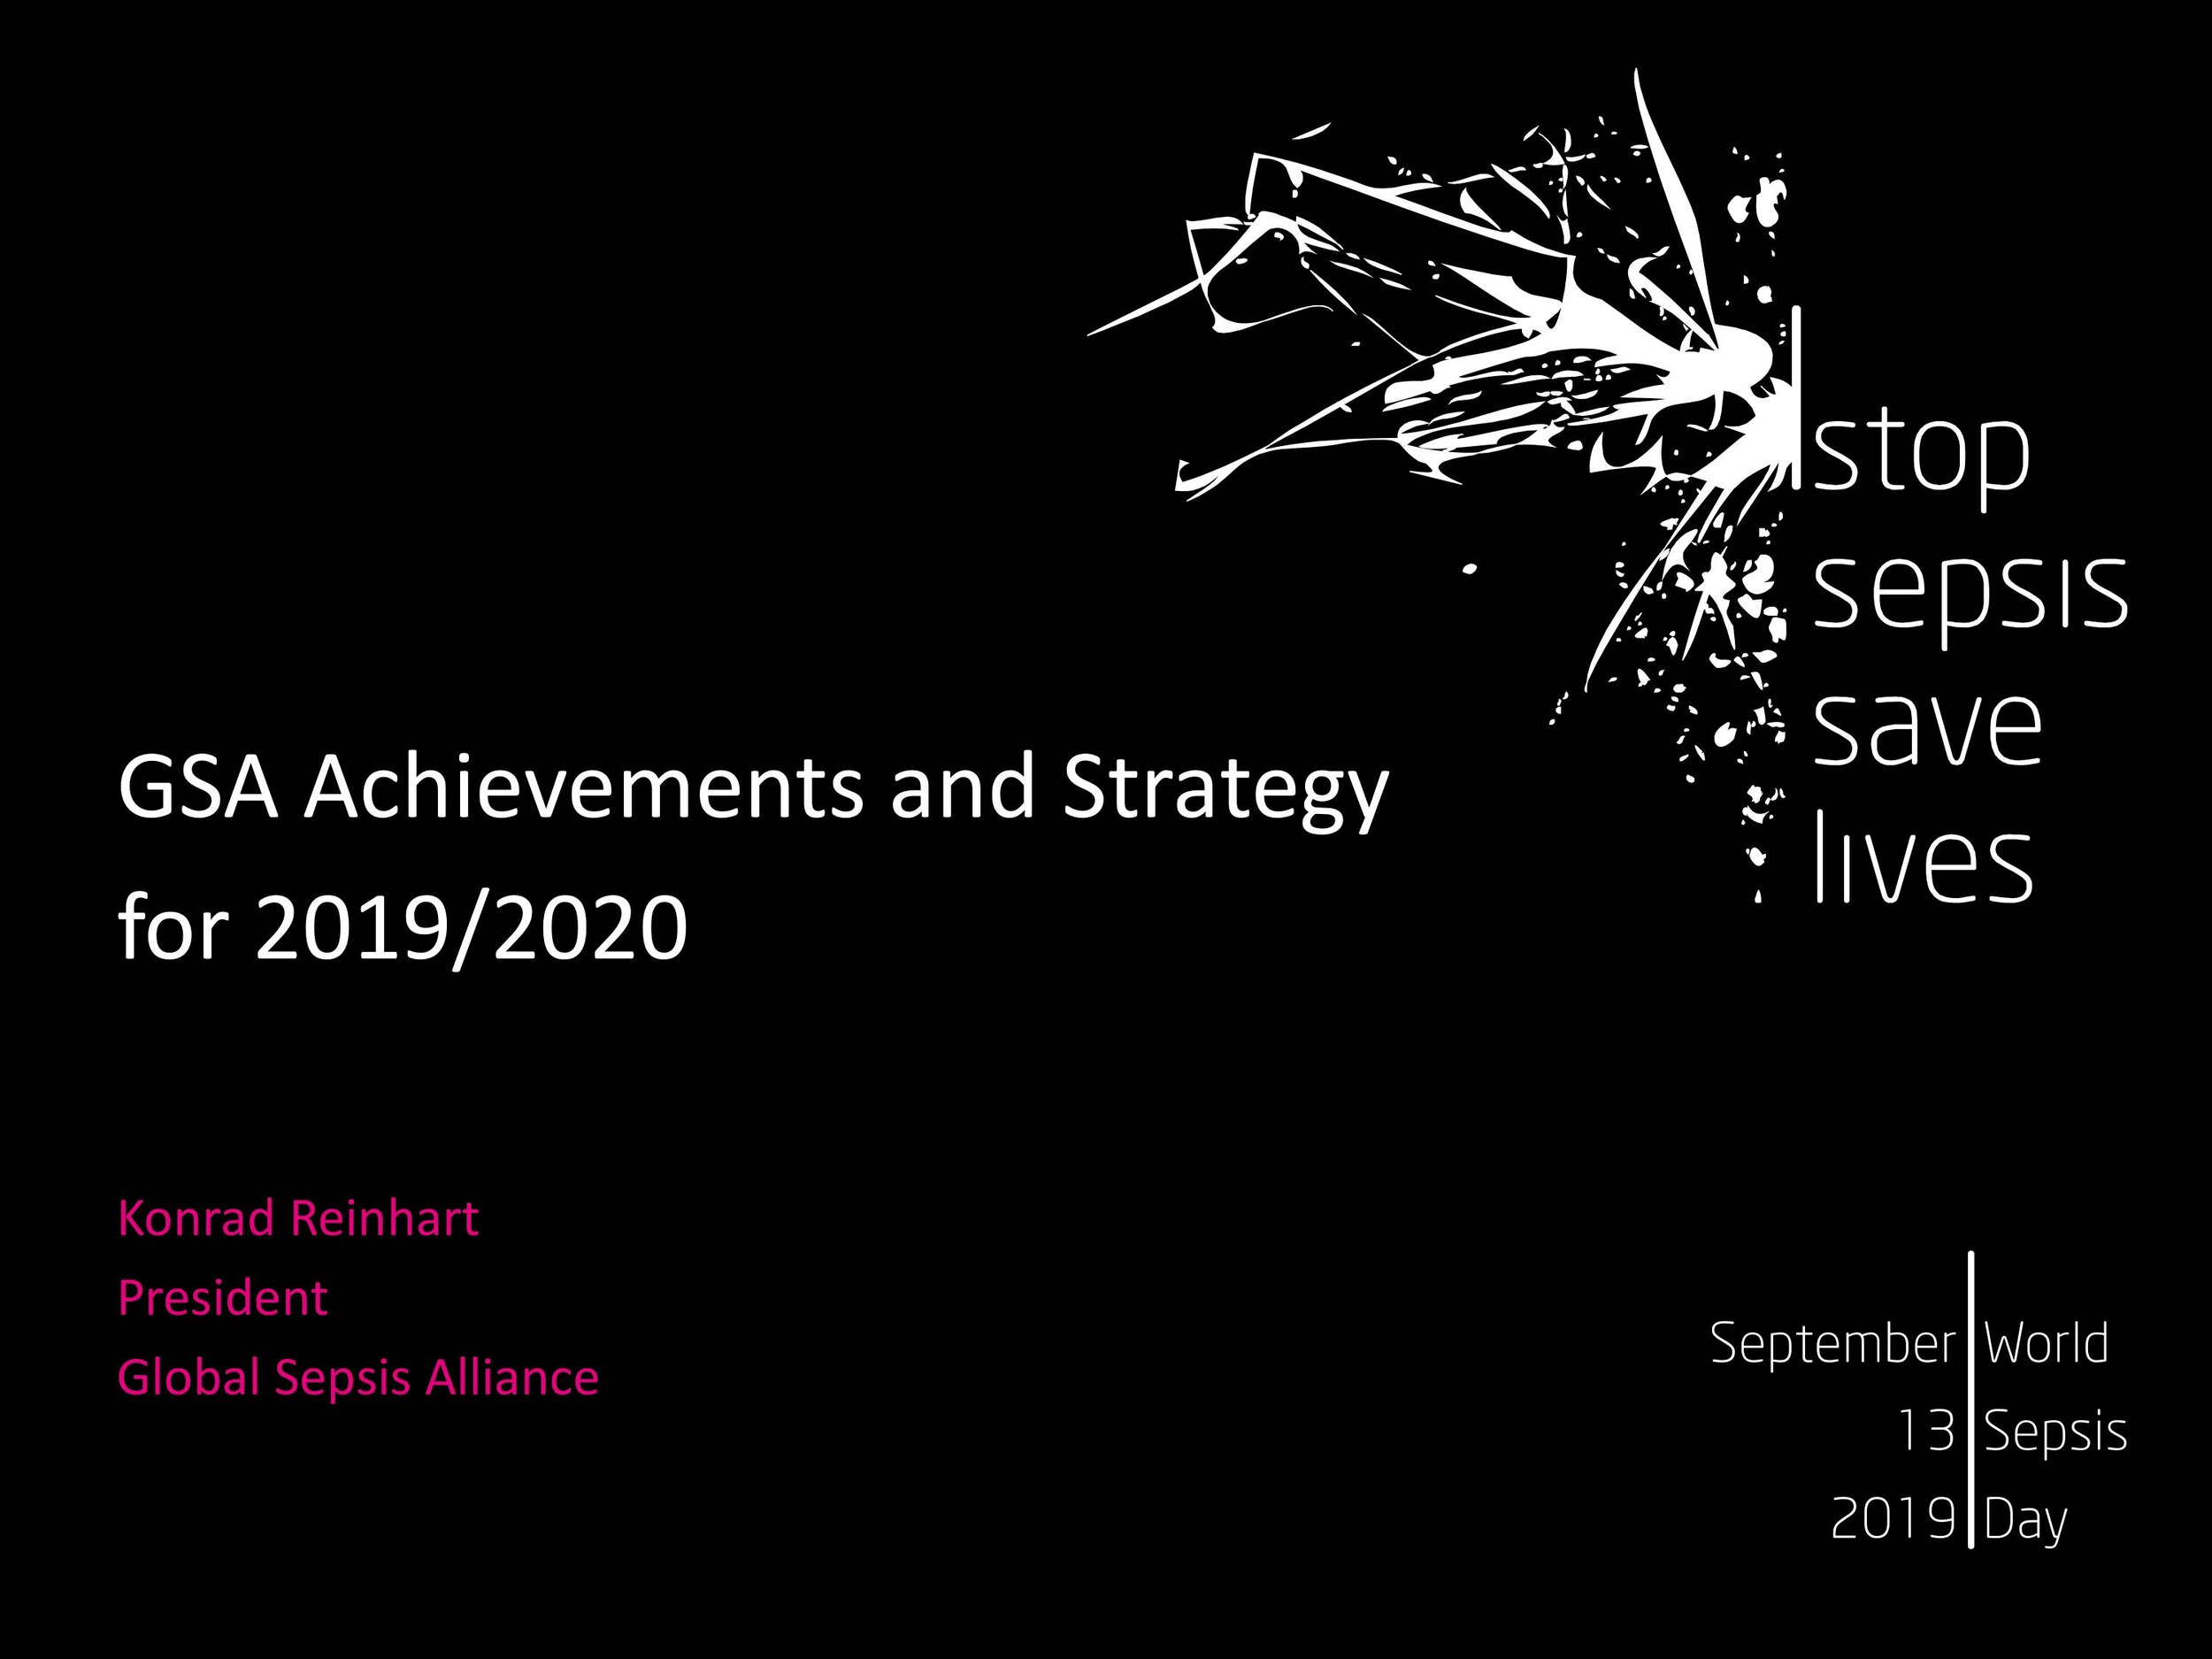 GSA Strategy and Achievements WCICCM 2019_1.jpg